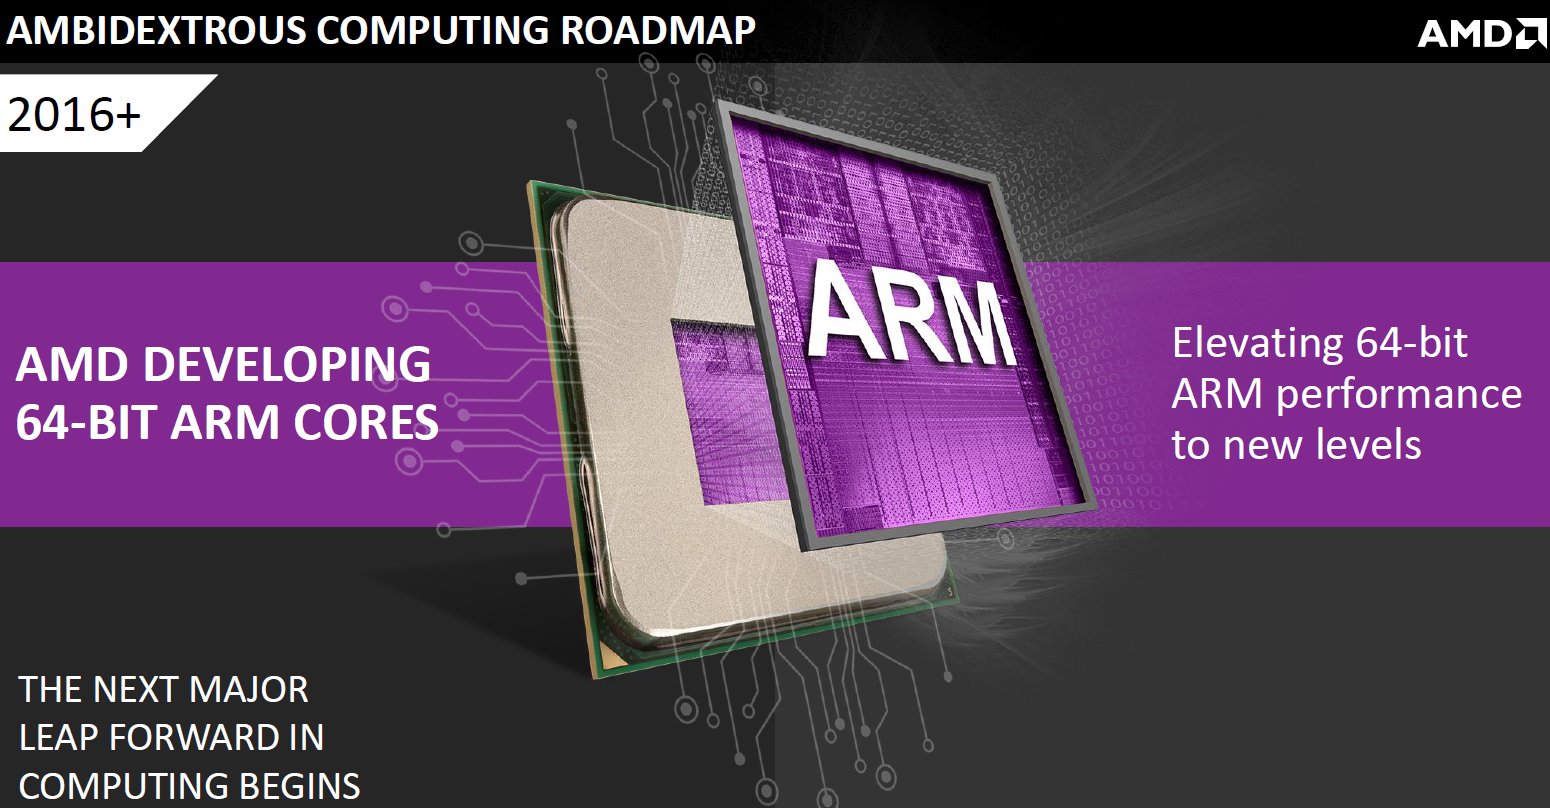 Img in addition Amd Cpu Roadmap together with Lg furthermore Main Php G View Core also . on mon core